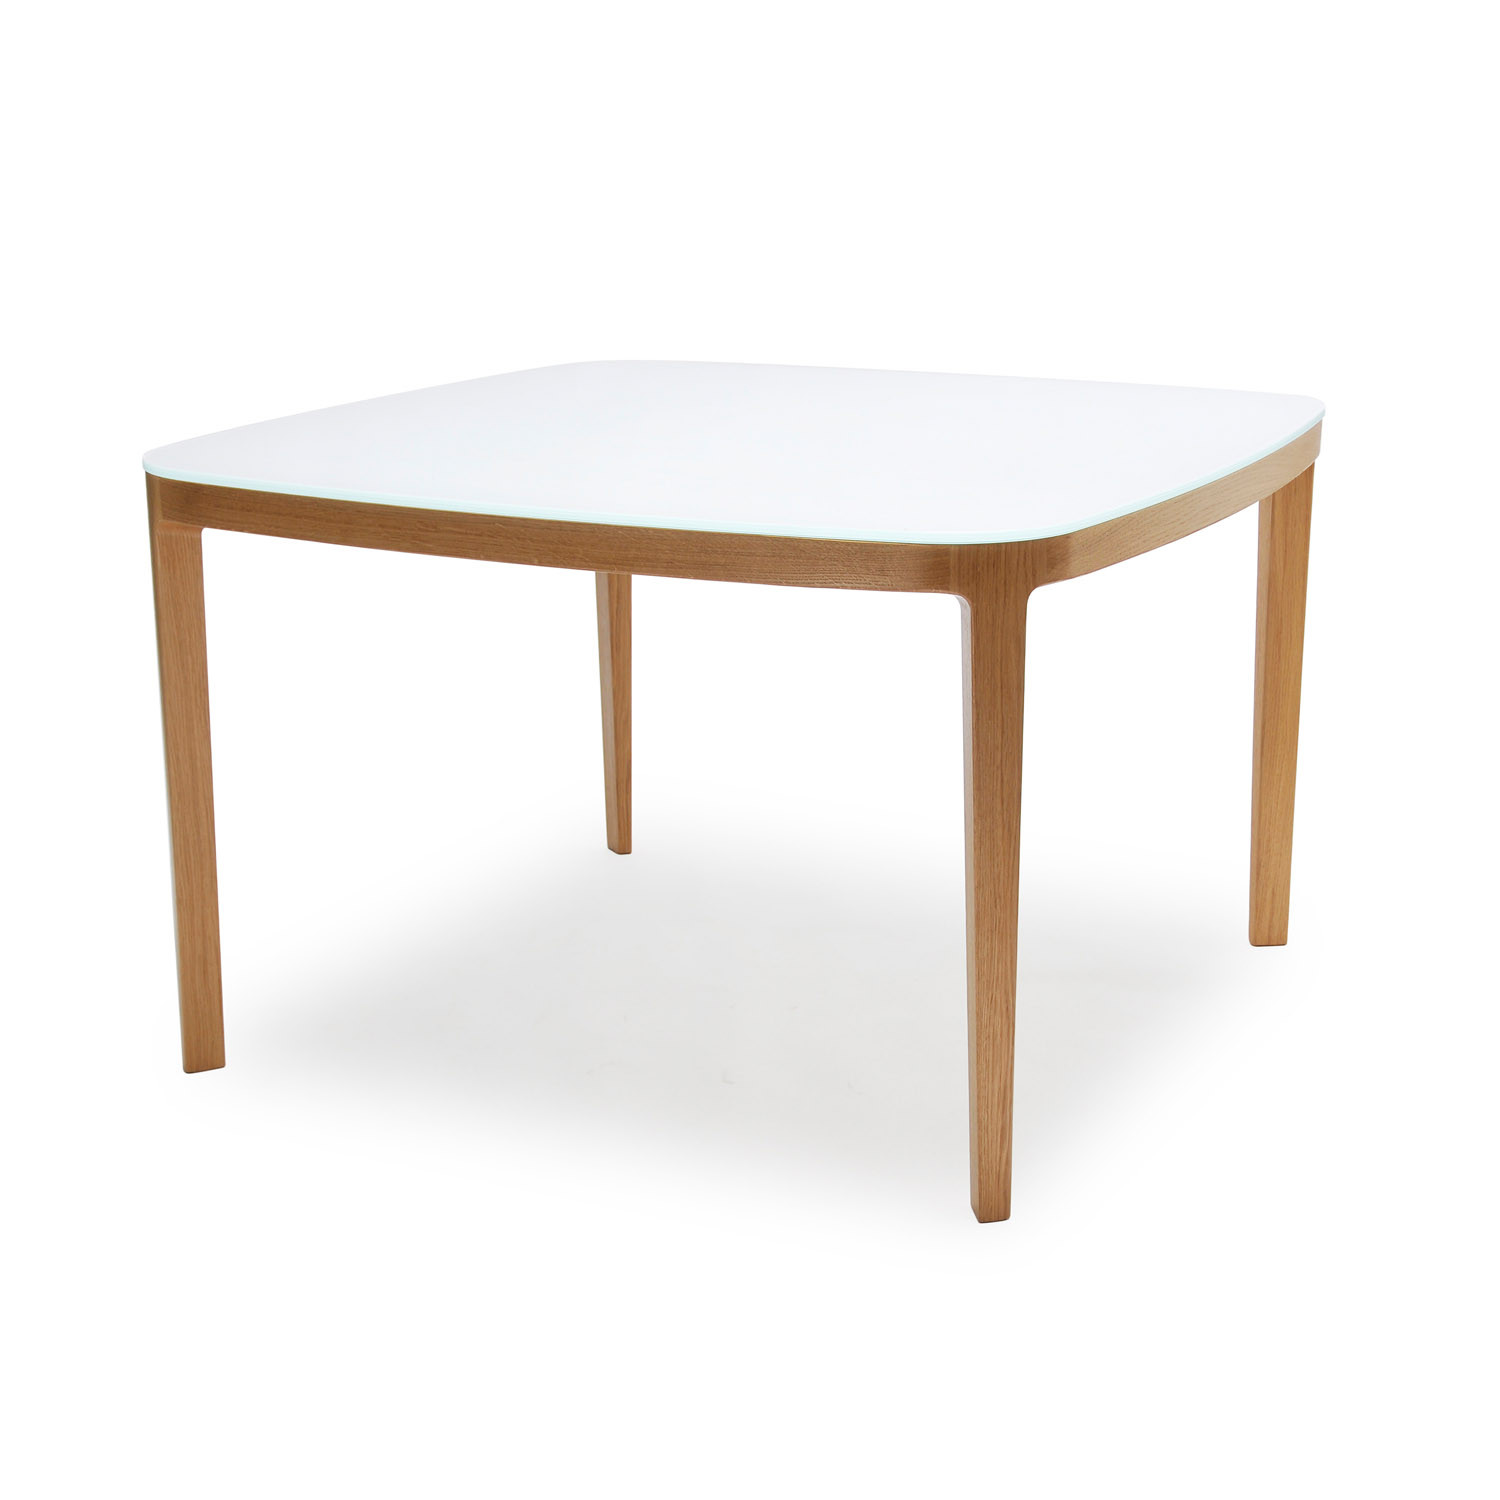 Orlo Table from Lyndon Design